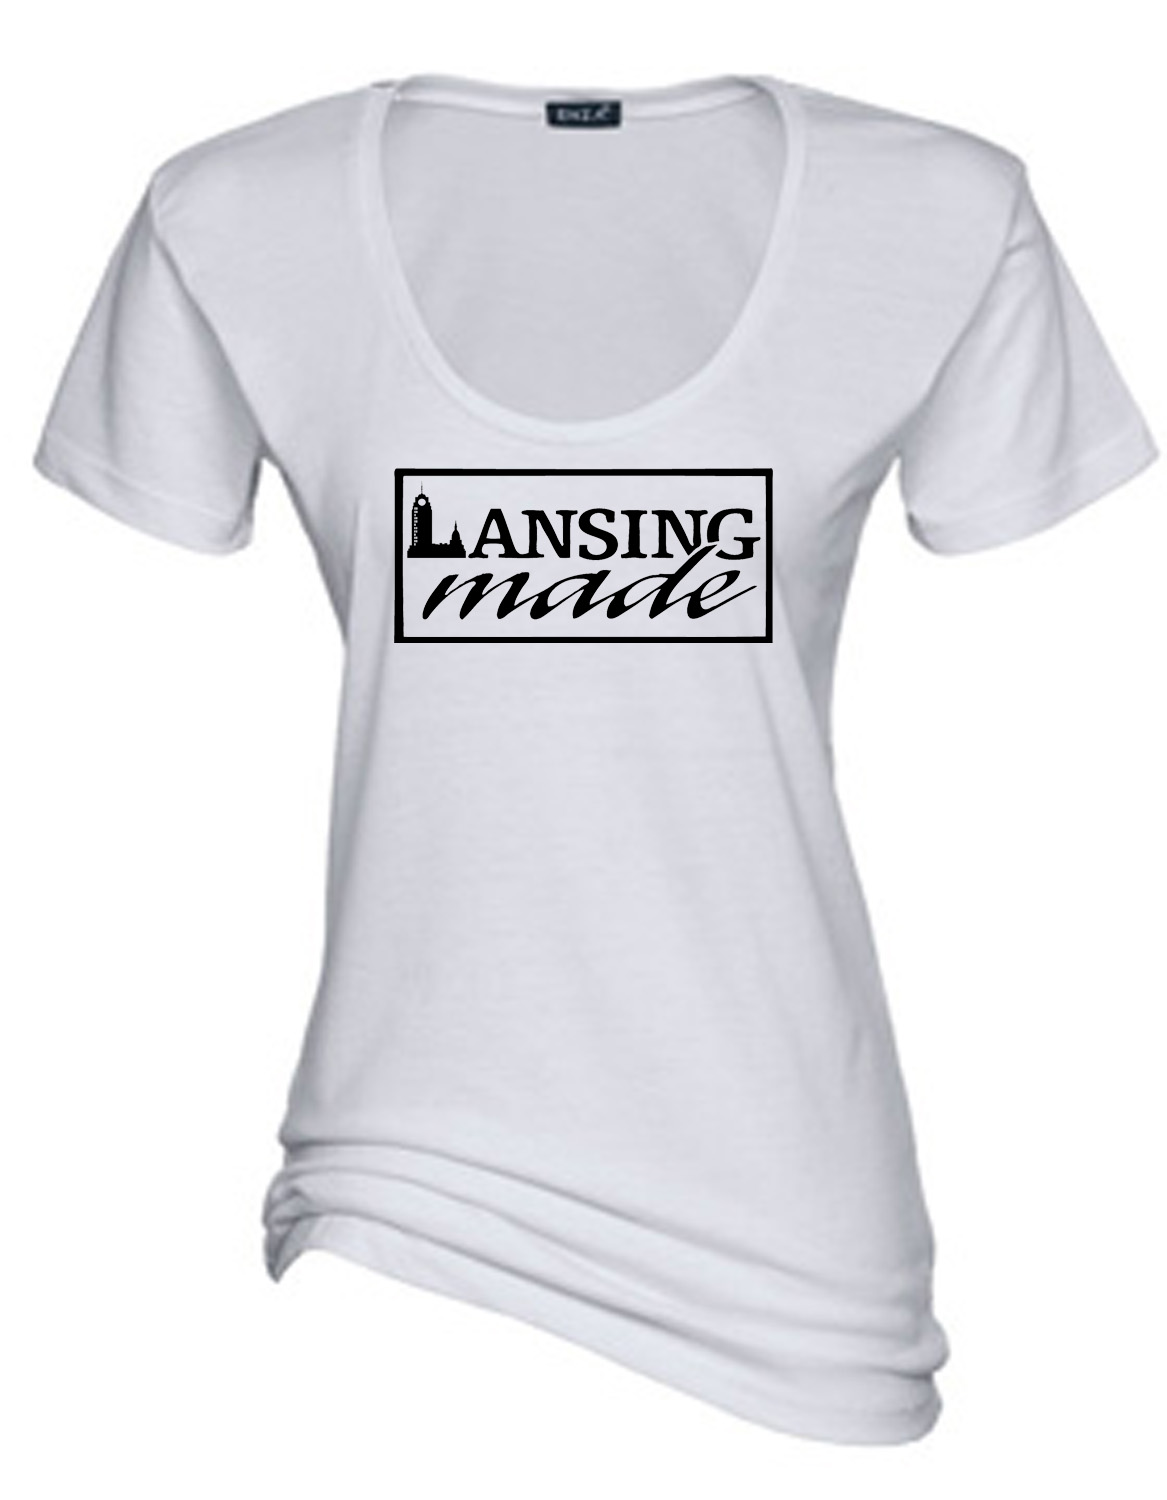 Lansing Made Scoop Tee